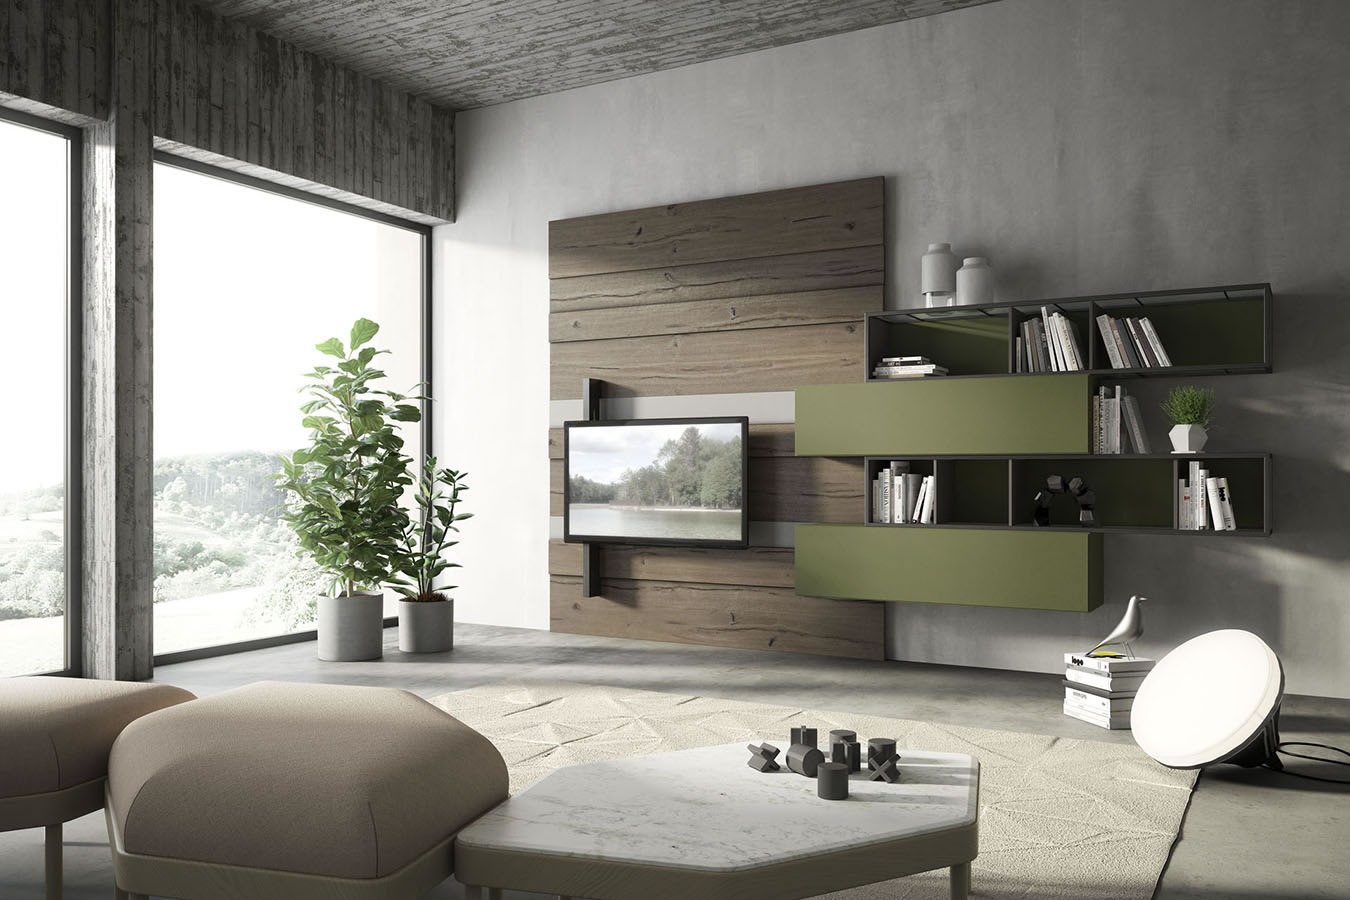 Momentoitalia Italian furniture - blog: News from the 2016 ...